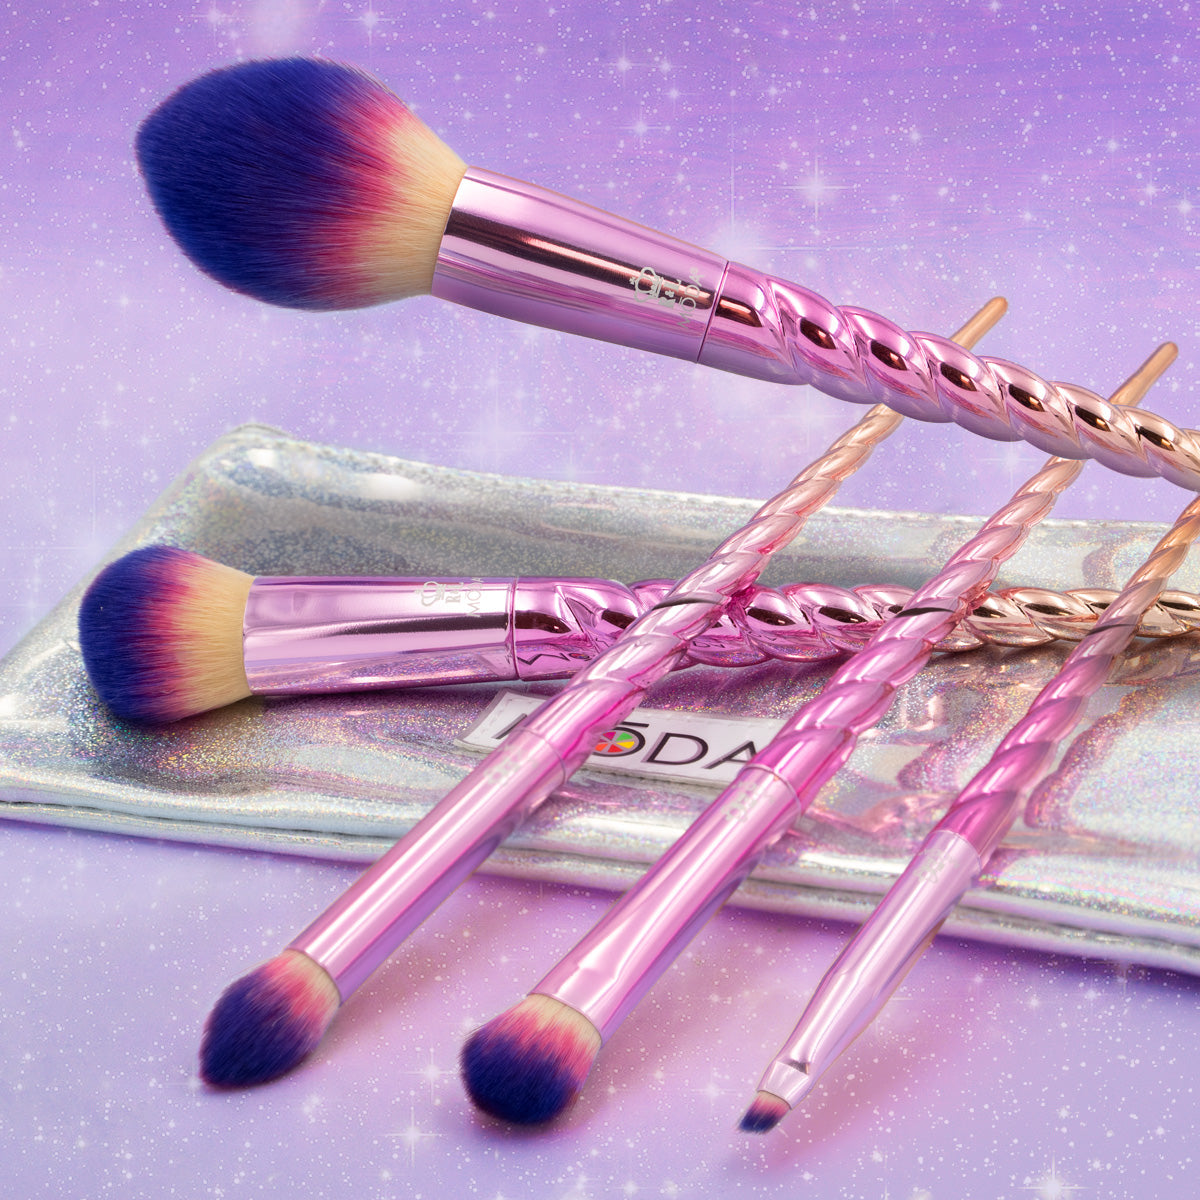 Reach for the Stars! BMD-MSTSET6 - MŌDA® Mythical Professional Makeup Brushes